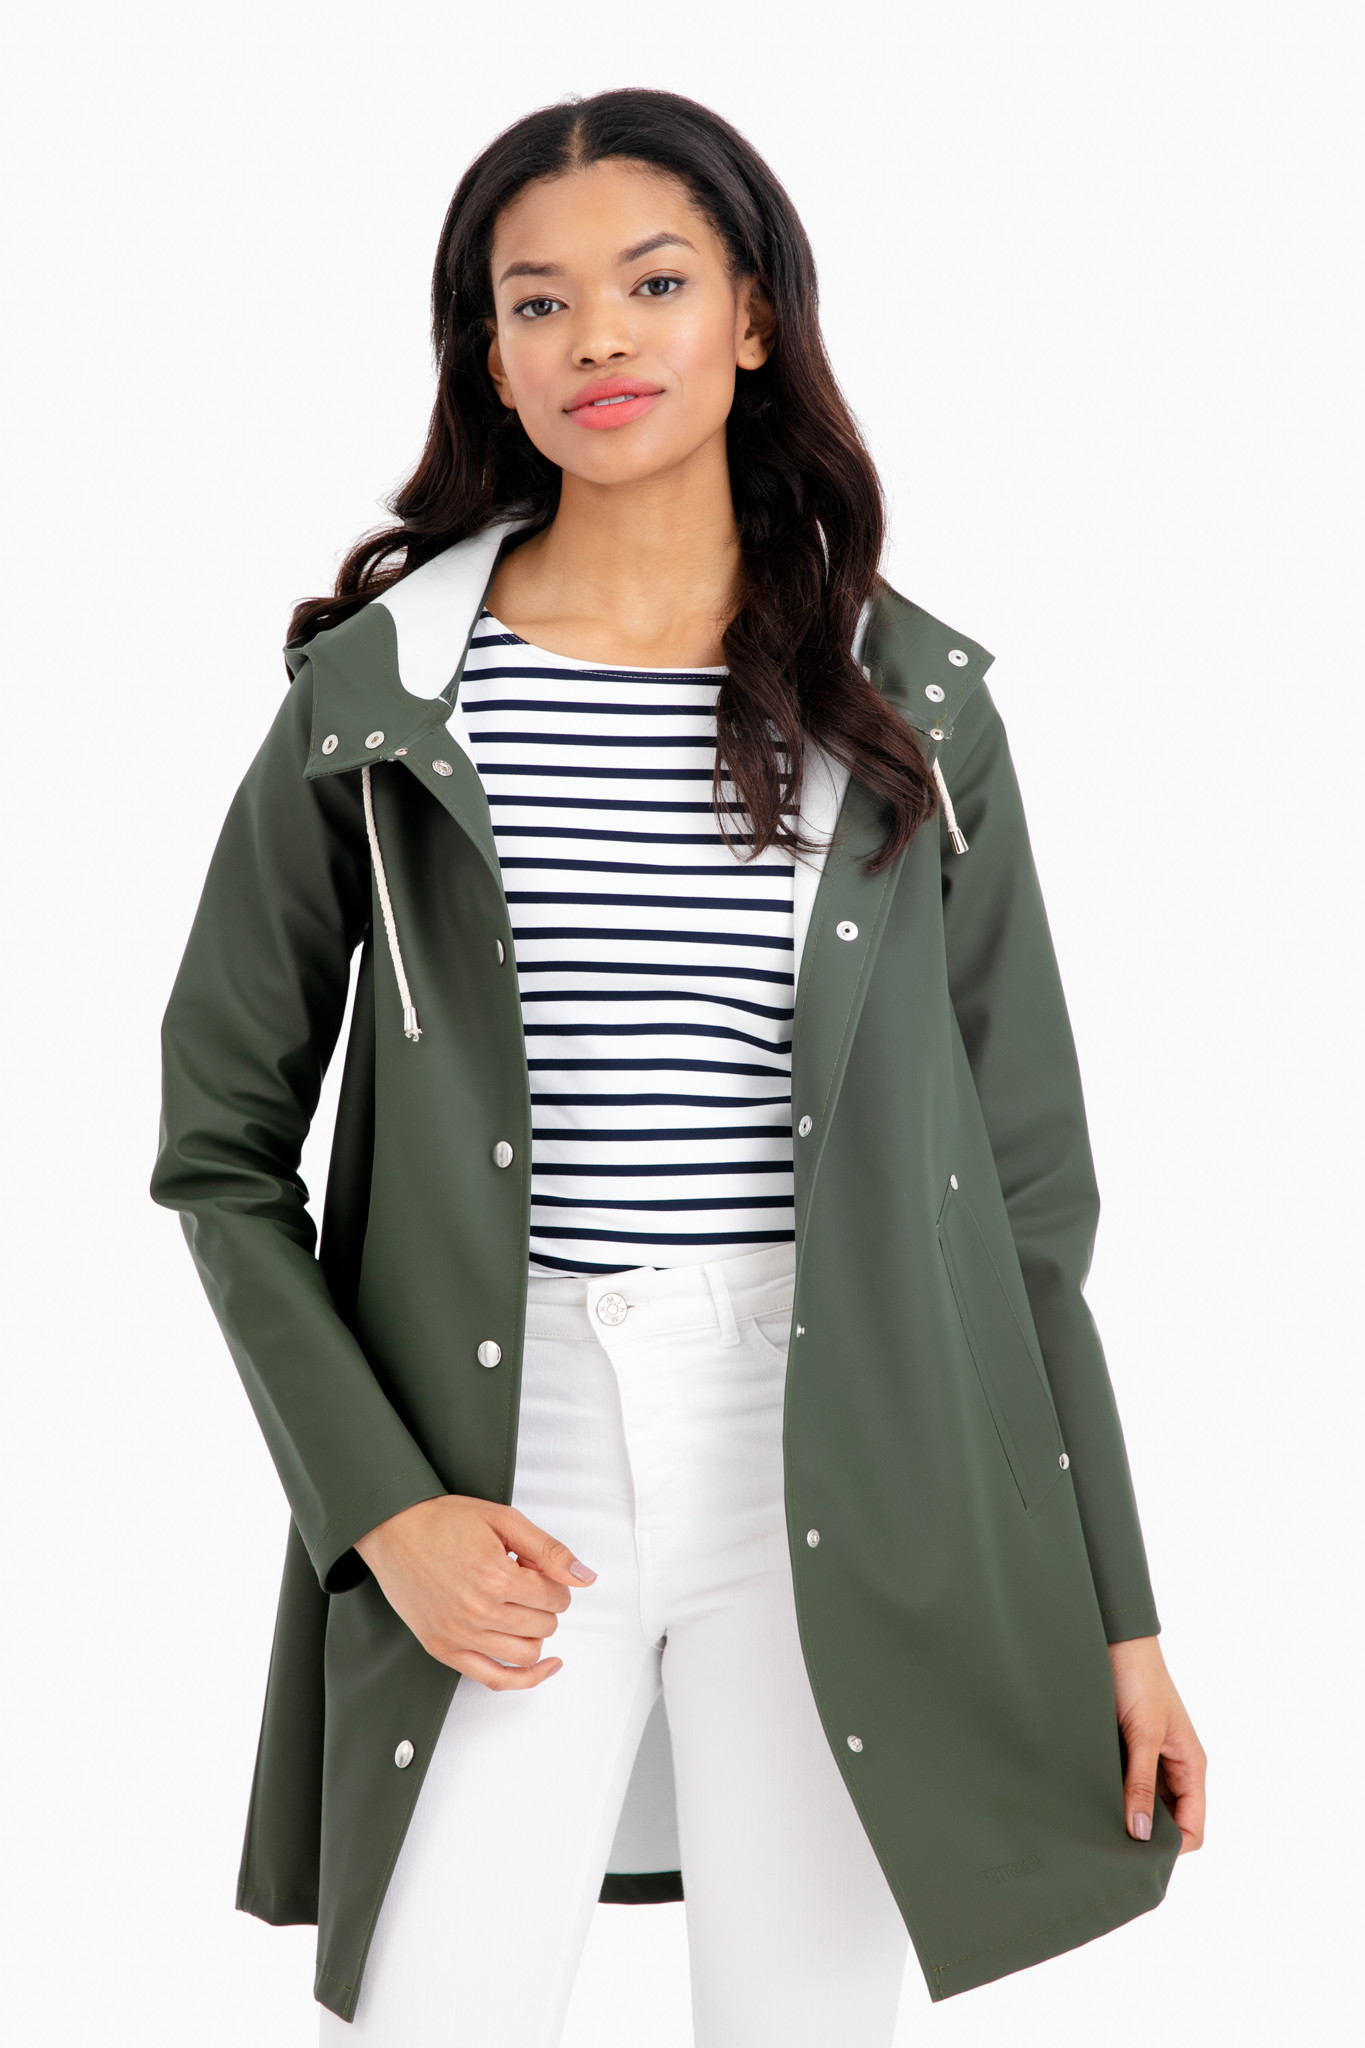 Green Hooded Raincoat with Striped Nautical Top and White Jeans